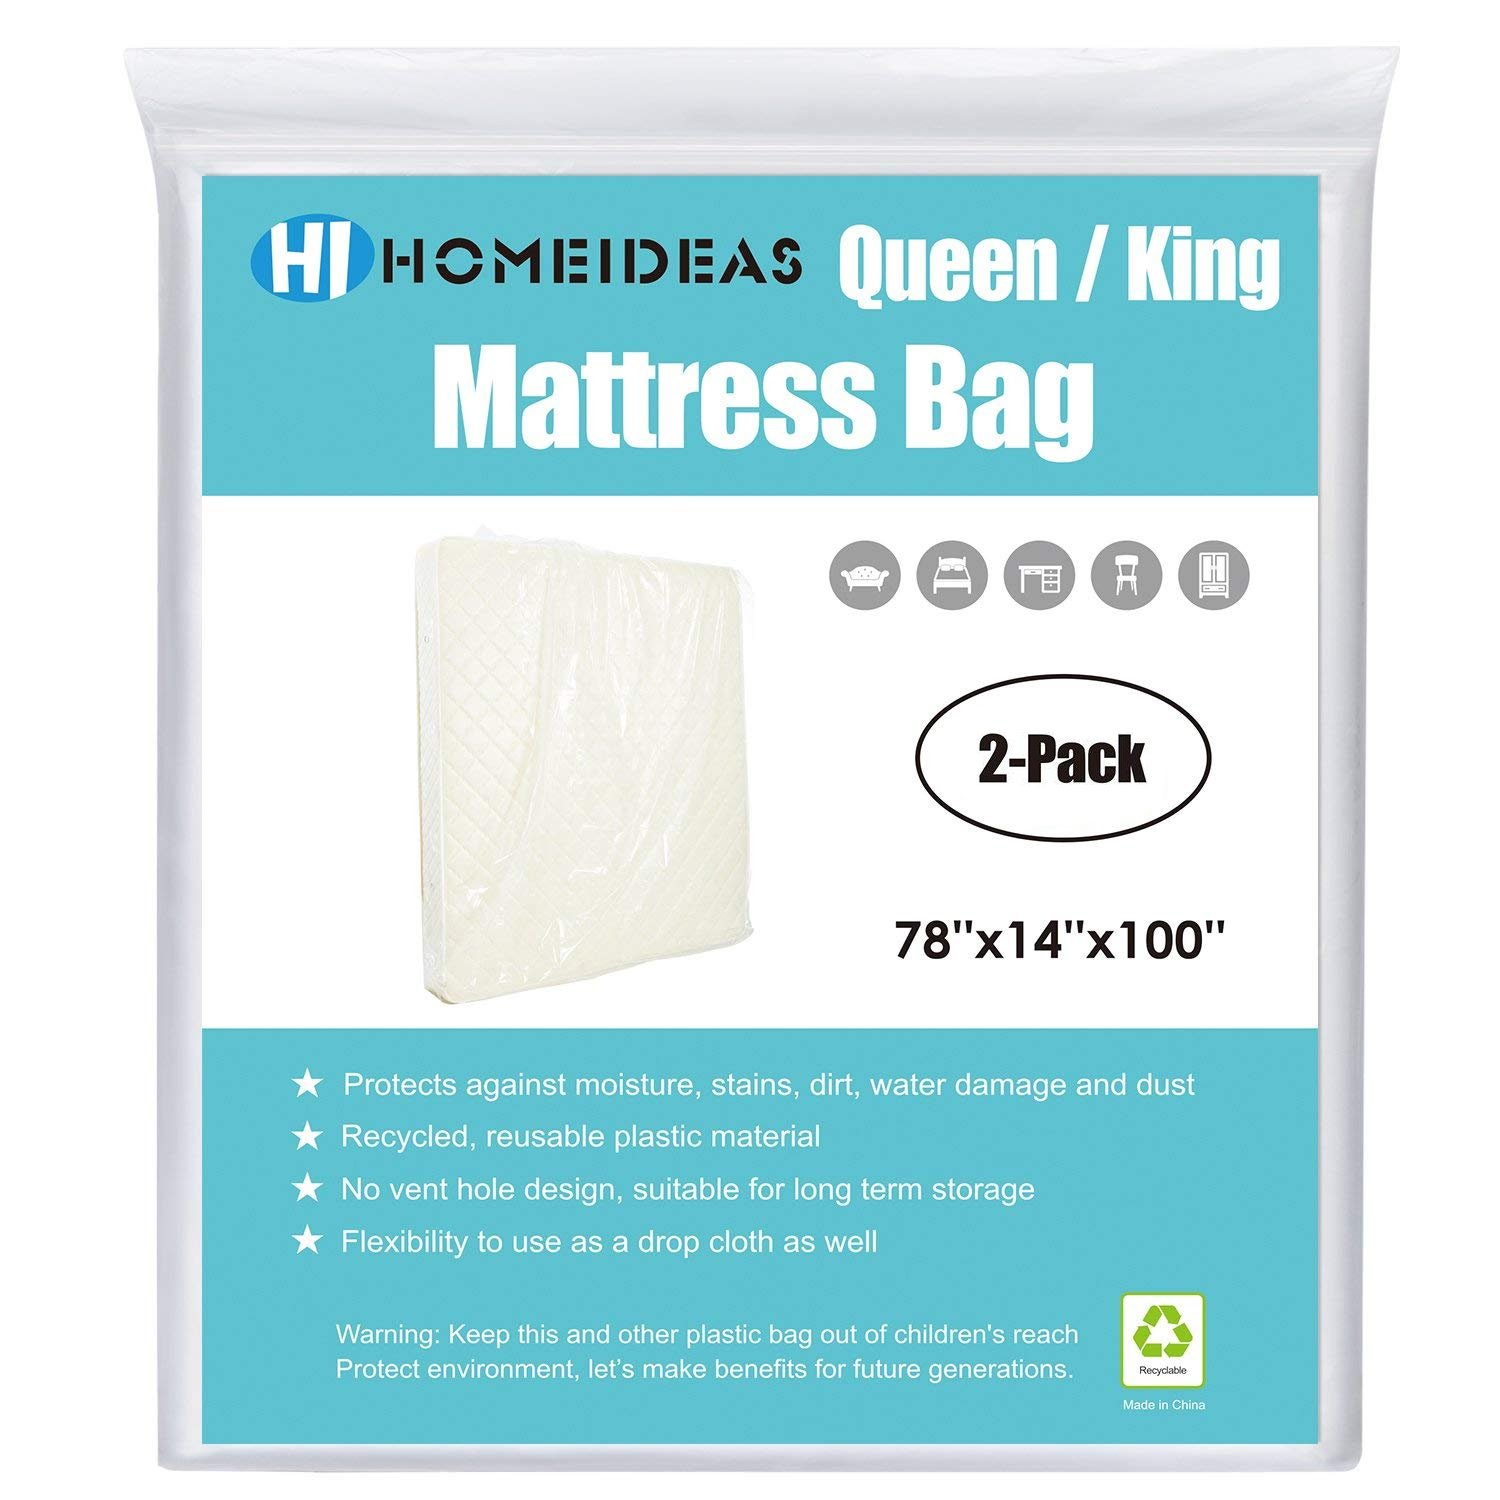 HOMEIDEAS 2-Pack 2 Mil Thick Mattress Bag for Moving & Long-term Storage, Fits Queen/King Size by HOMEIDEAS